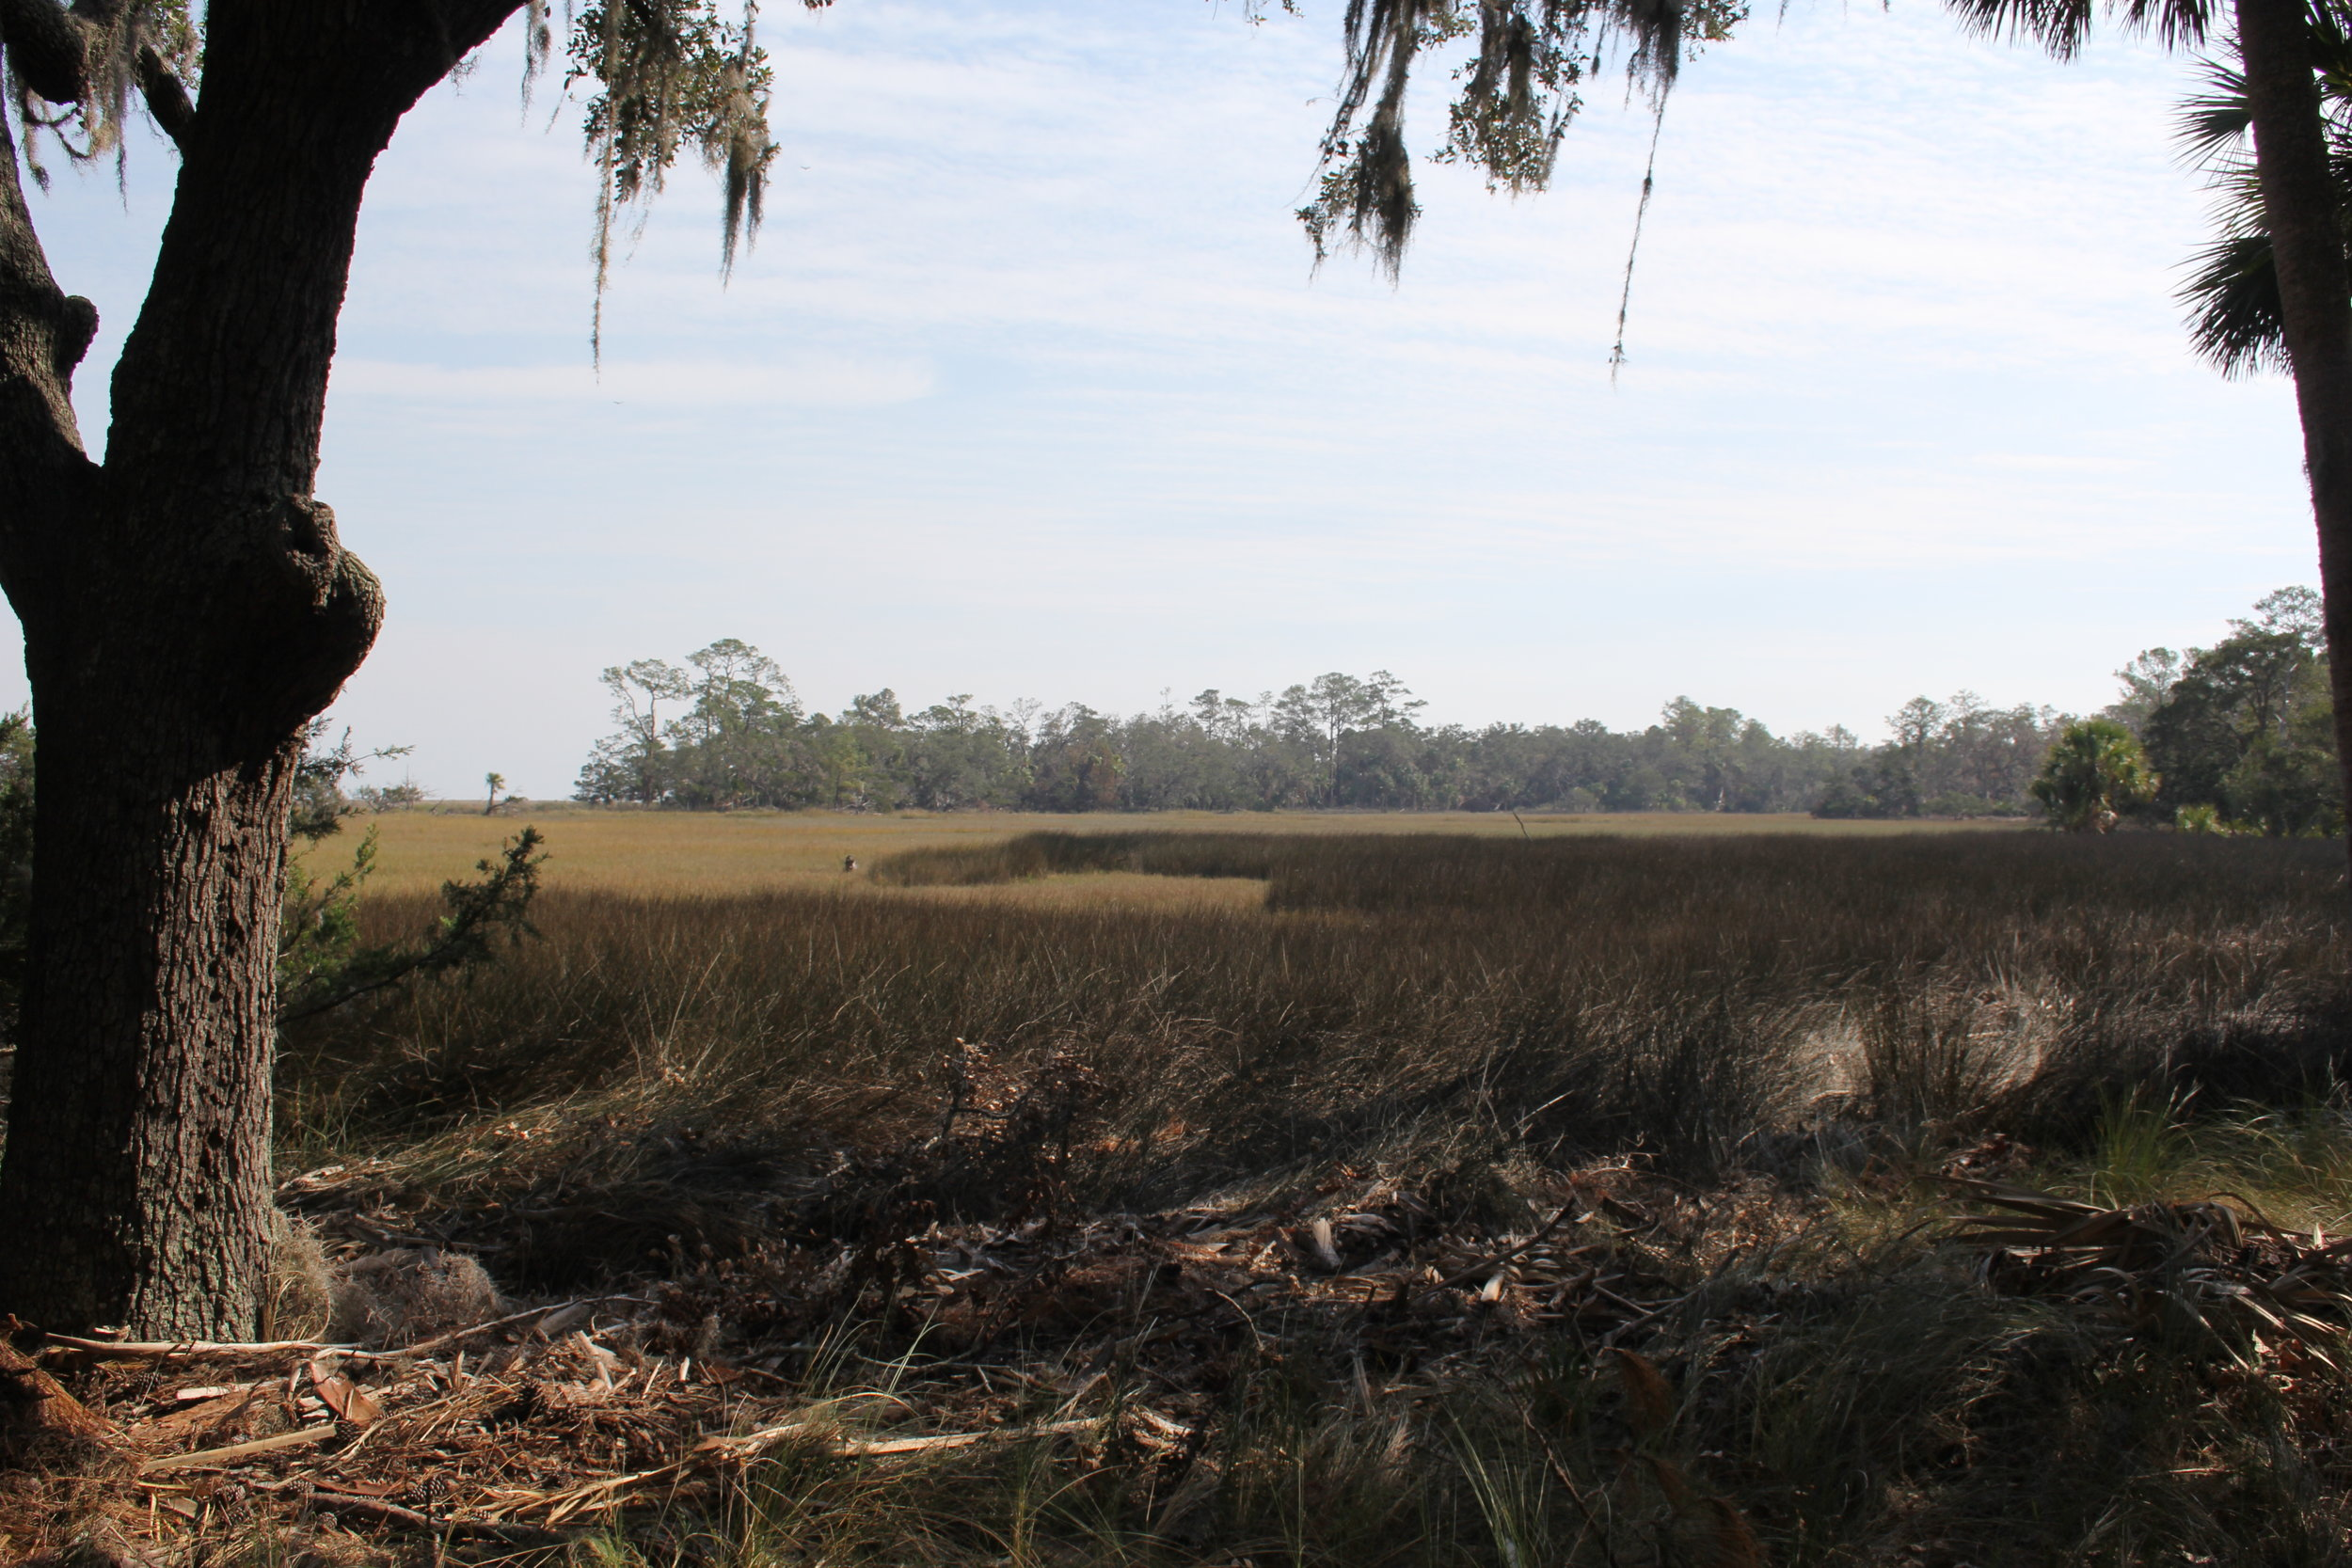 More and more freshwater marshes and maritime forests in Coastal Georgia are being damaged by saltwater.